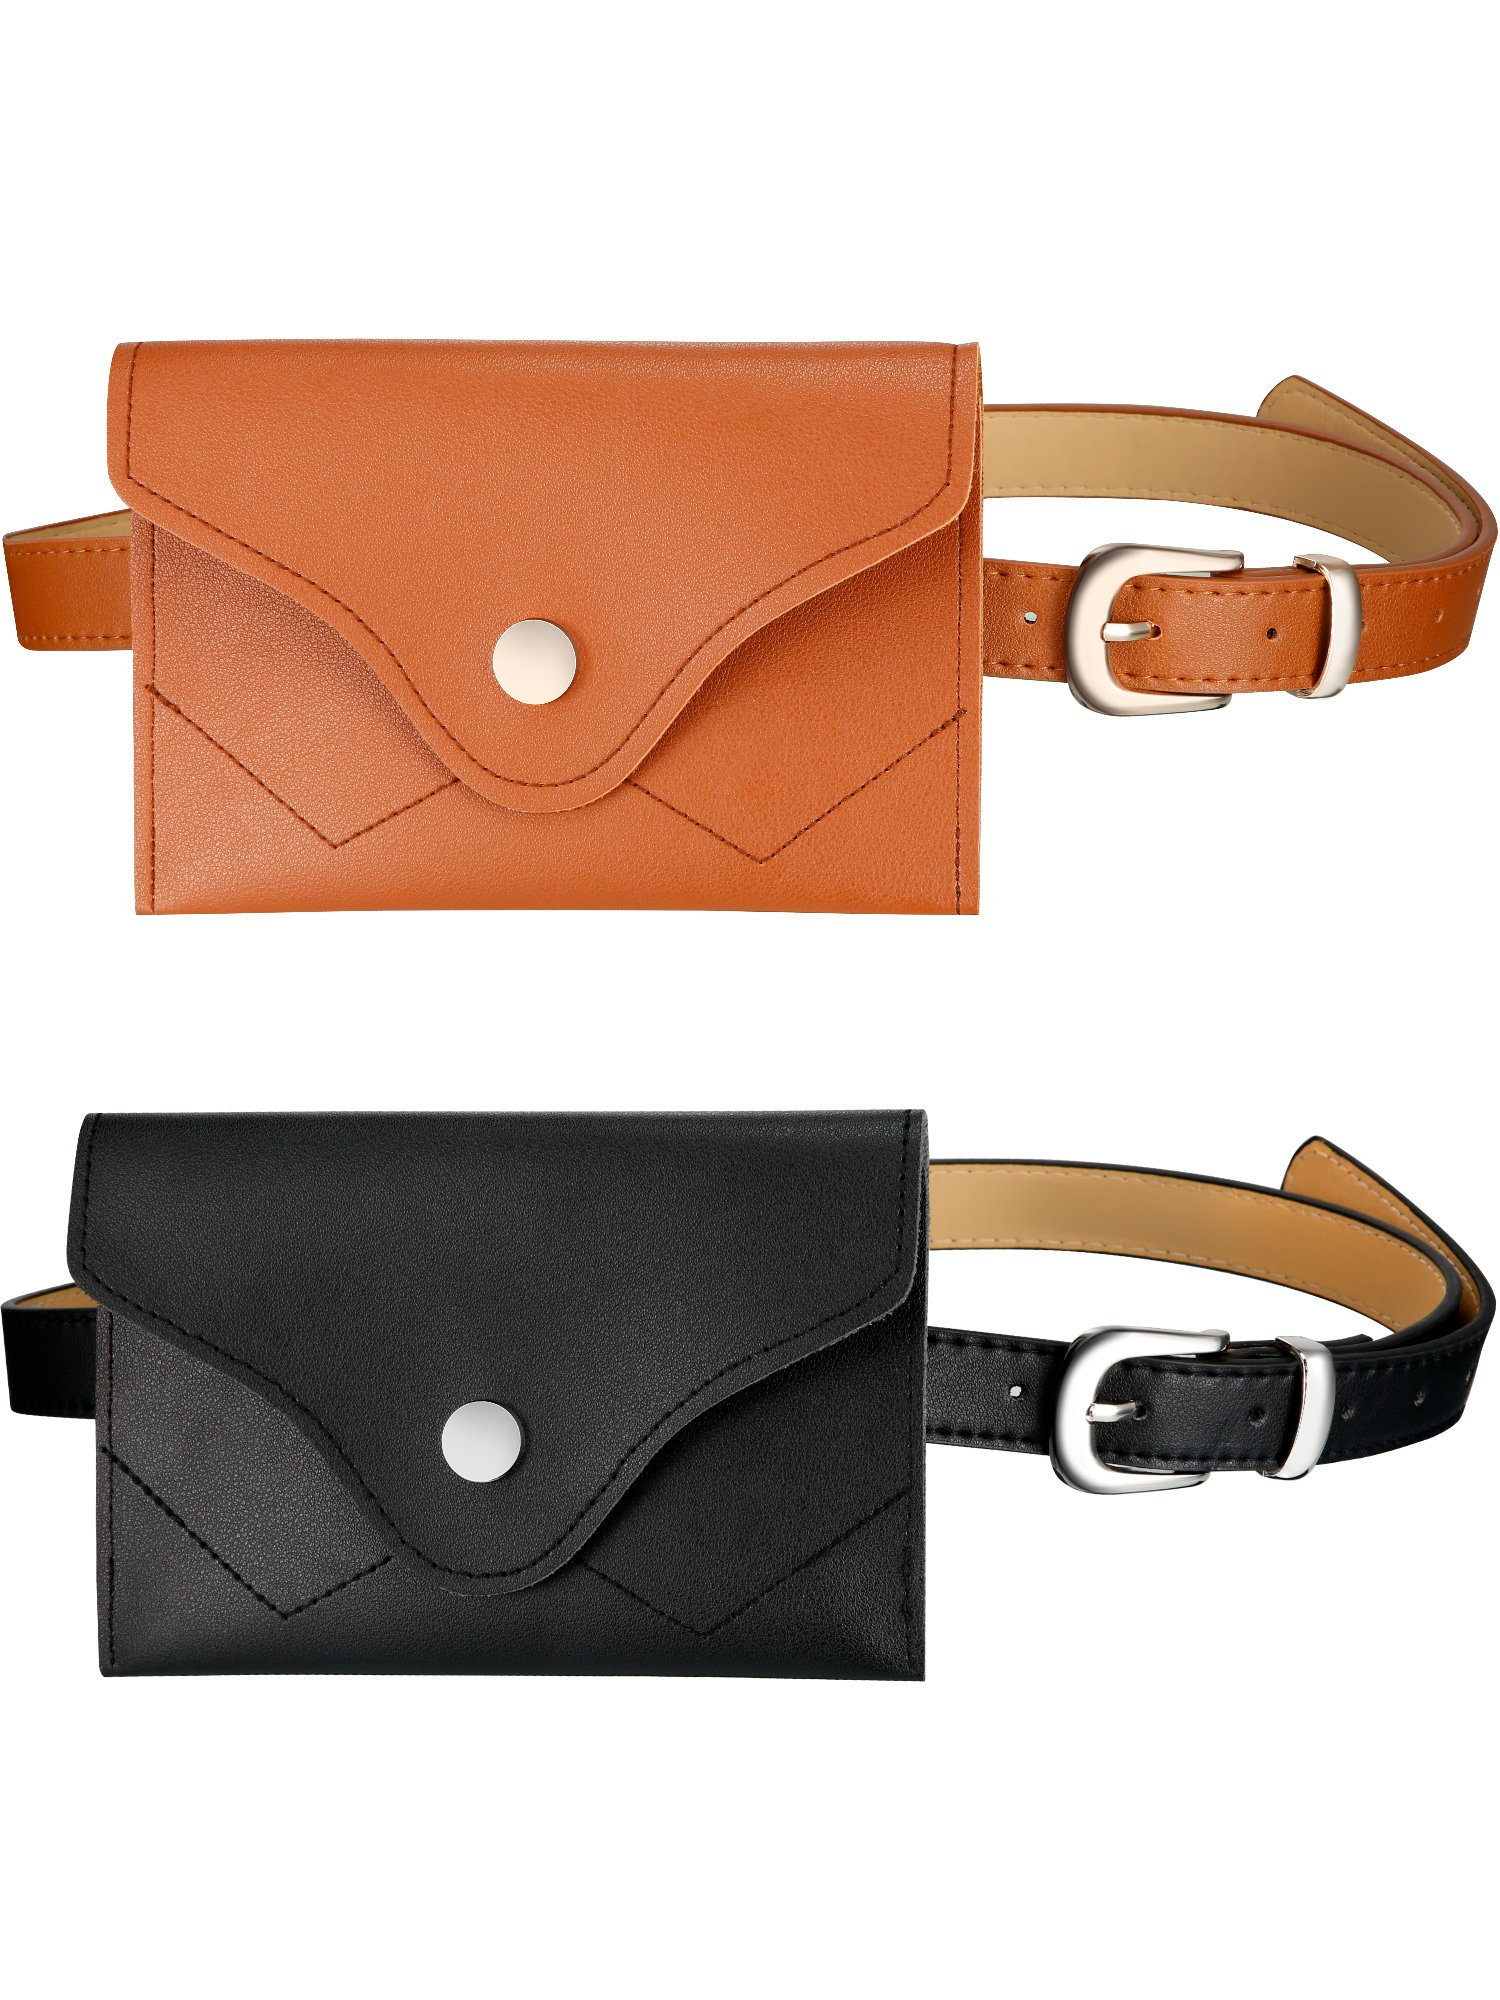 Gejoy 2 Pieces Womens Fashion Leather Belt Fanny Pack Removable Belt with Waist Pouch Mini Purse Travel Cell Phone Bag